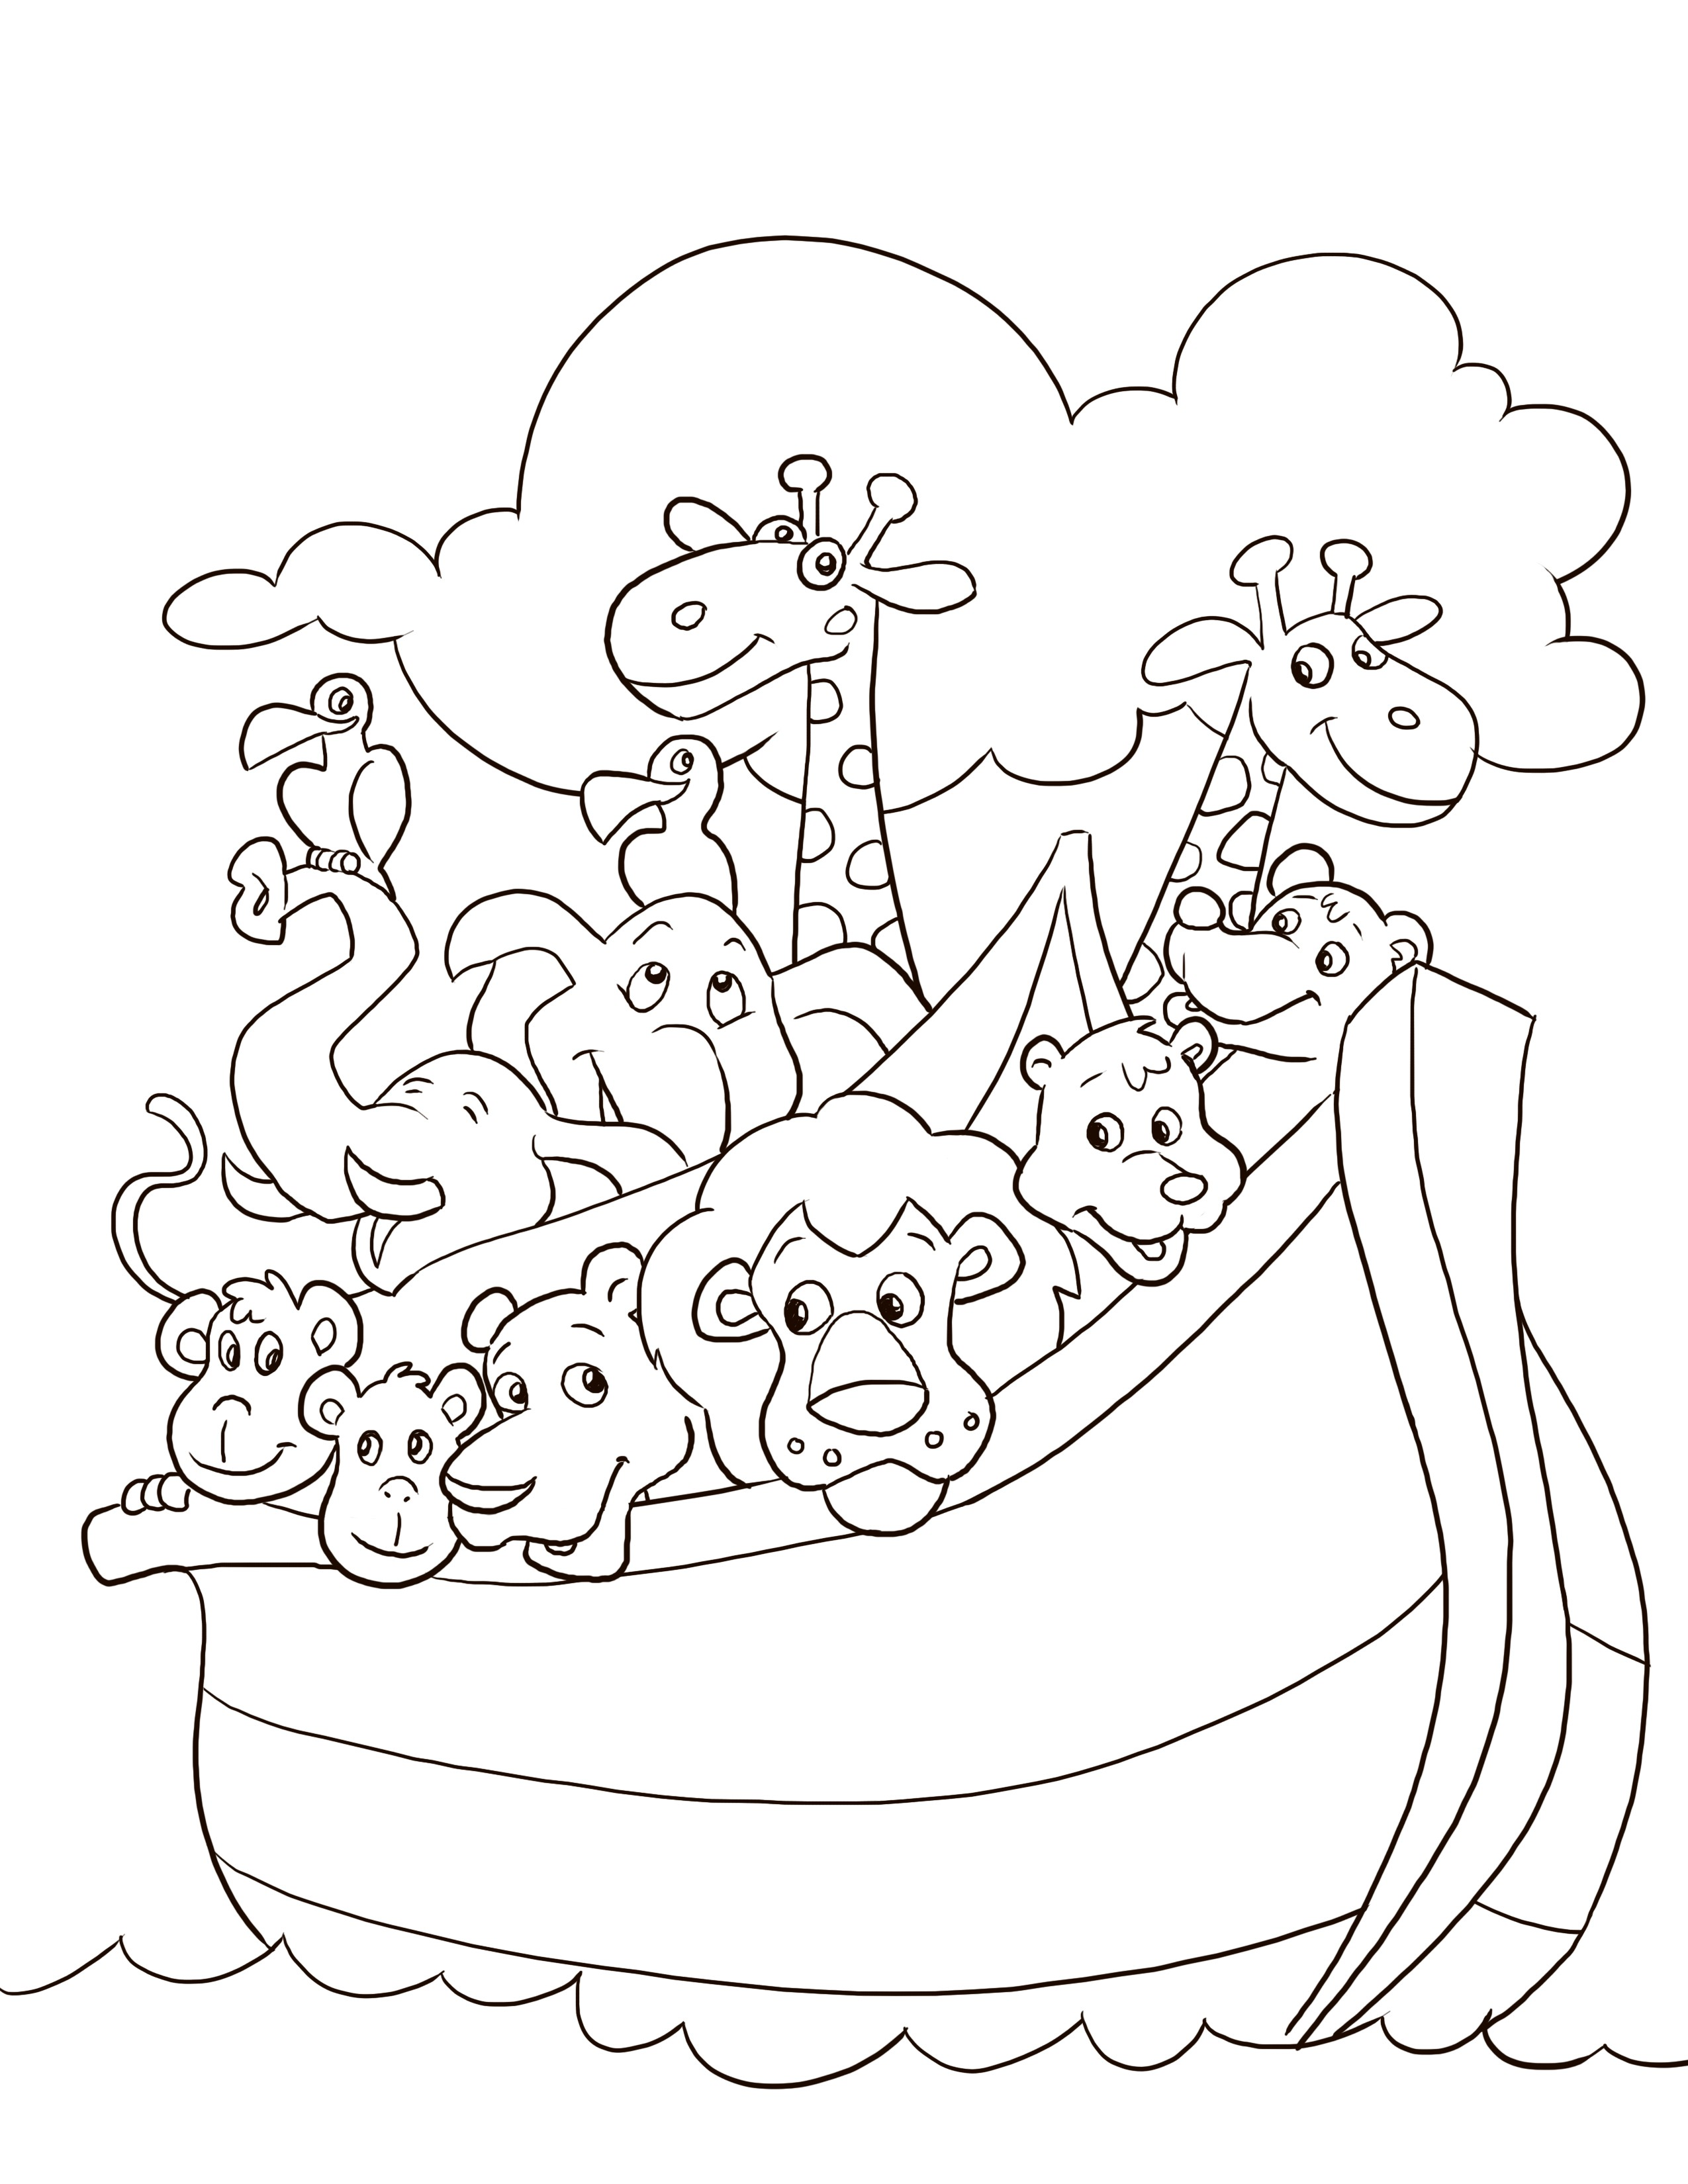 Daniel Boone Coloring Pages At Getcolorings